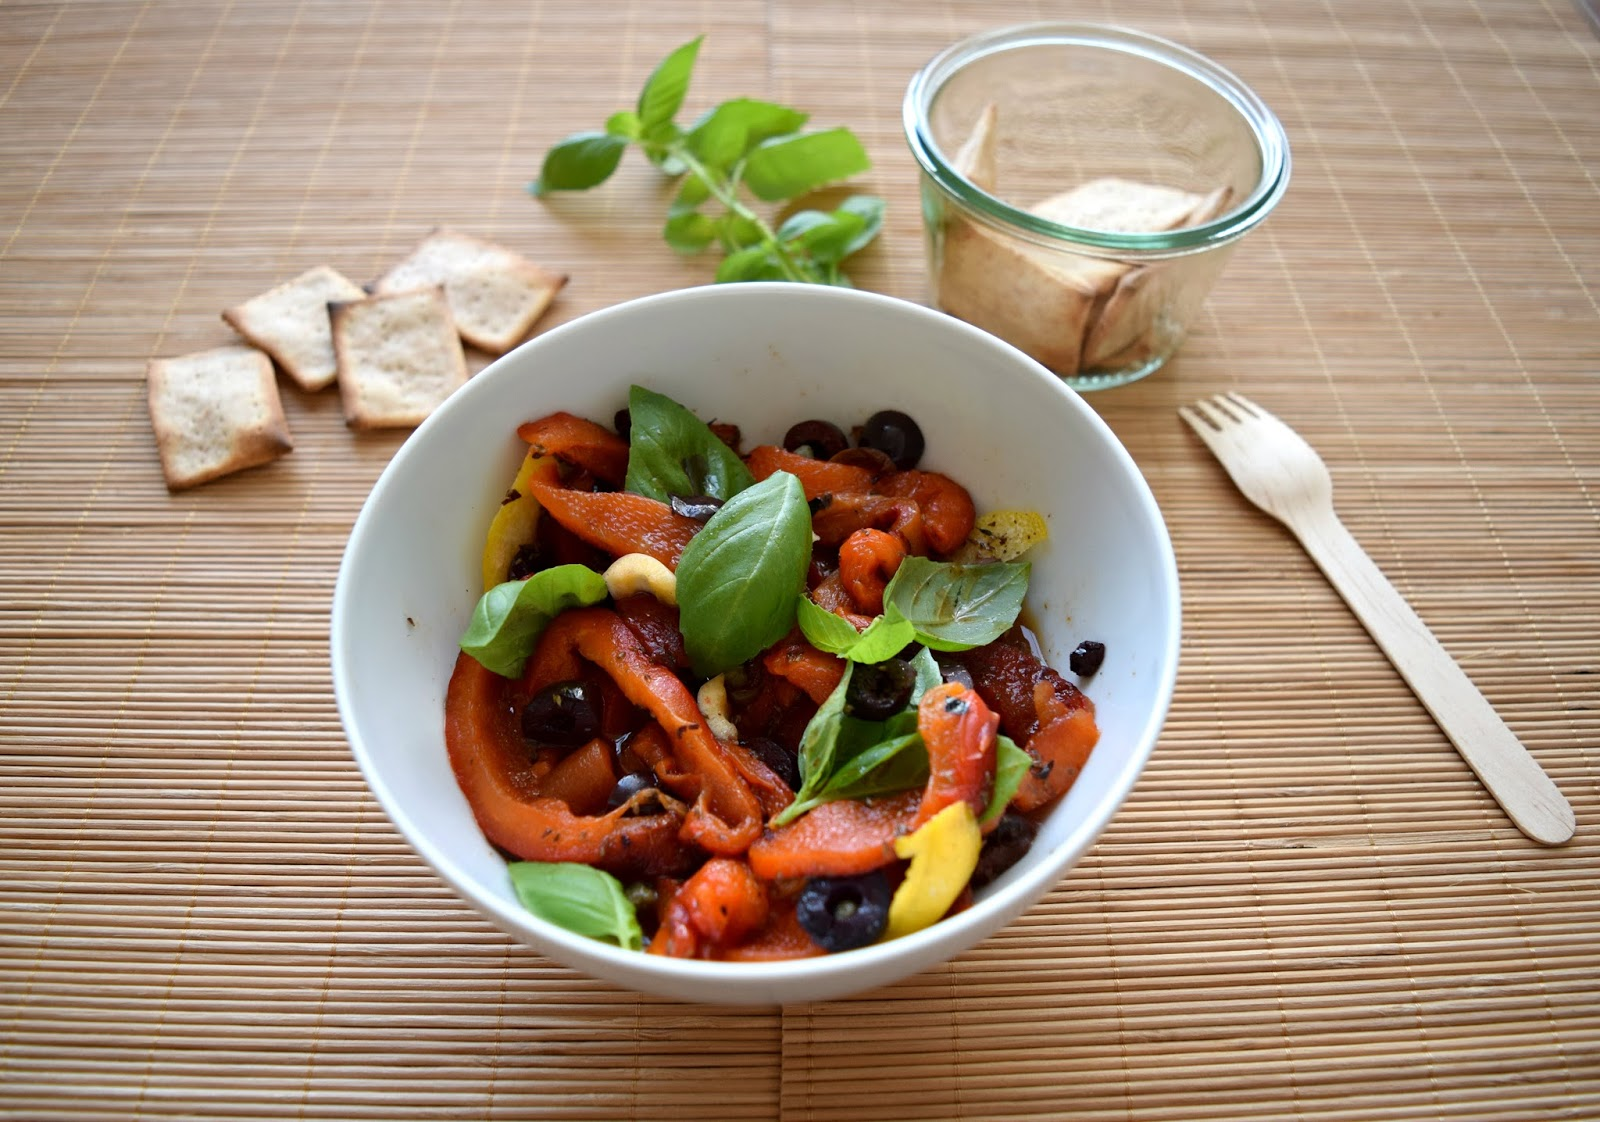 Grilled pepper salad with capers, olives and lemon